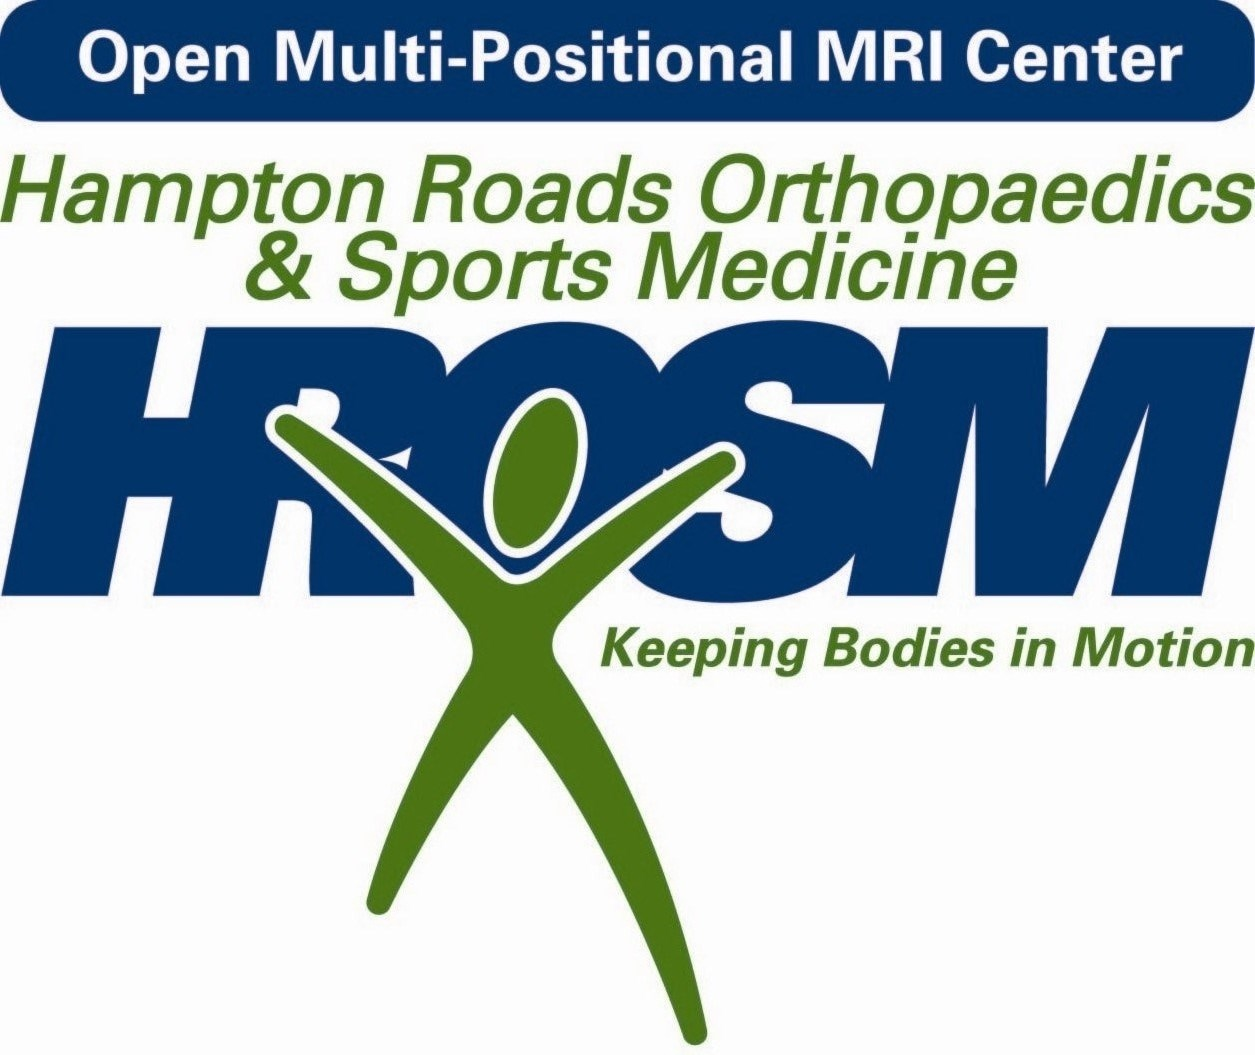 Hampton Roads Orthopaedics & Sports Medicine